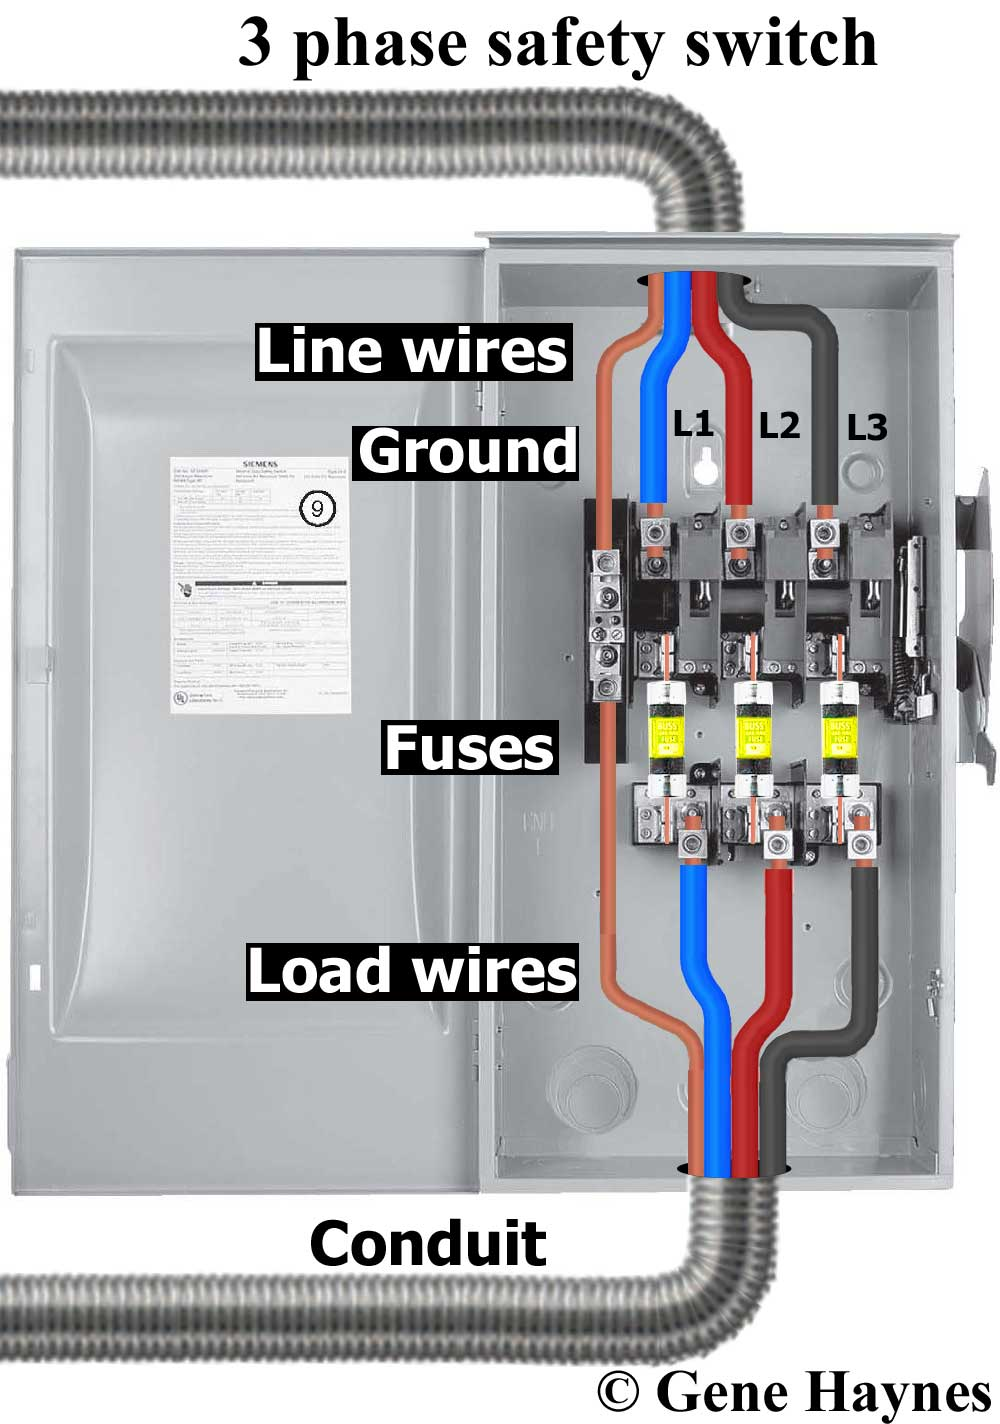 Fusable safety fuse how to wire safety switch 60 amp disconnect wiring diagram at readyjetset.co